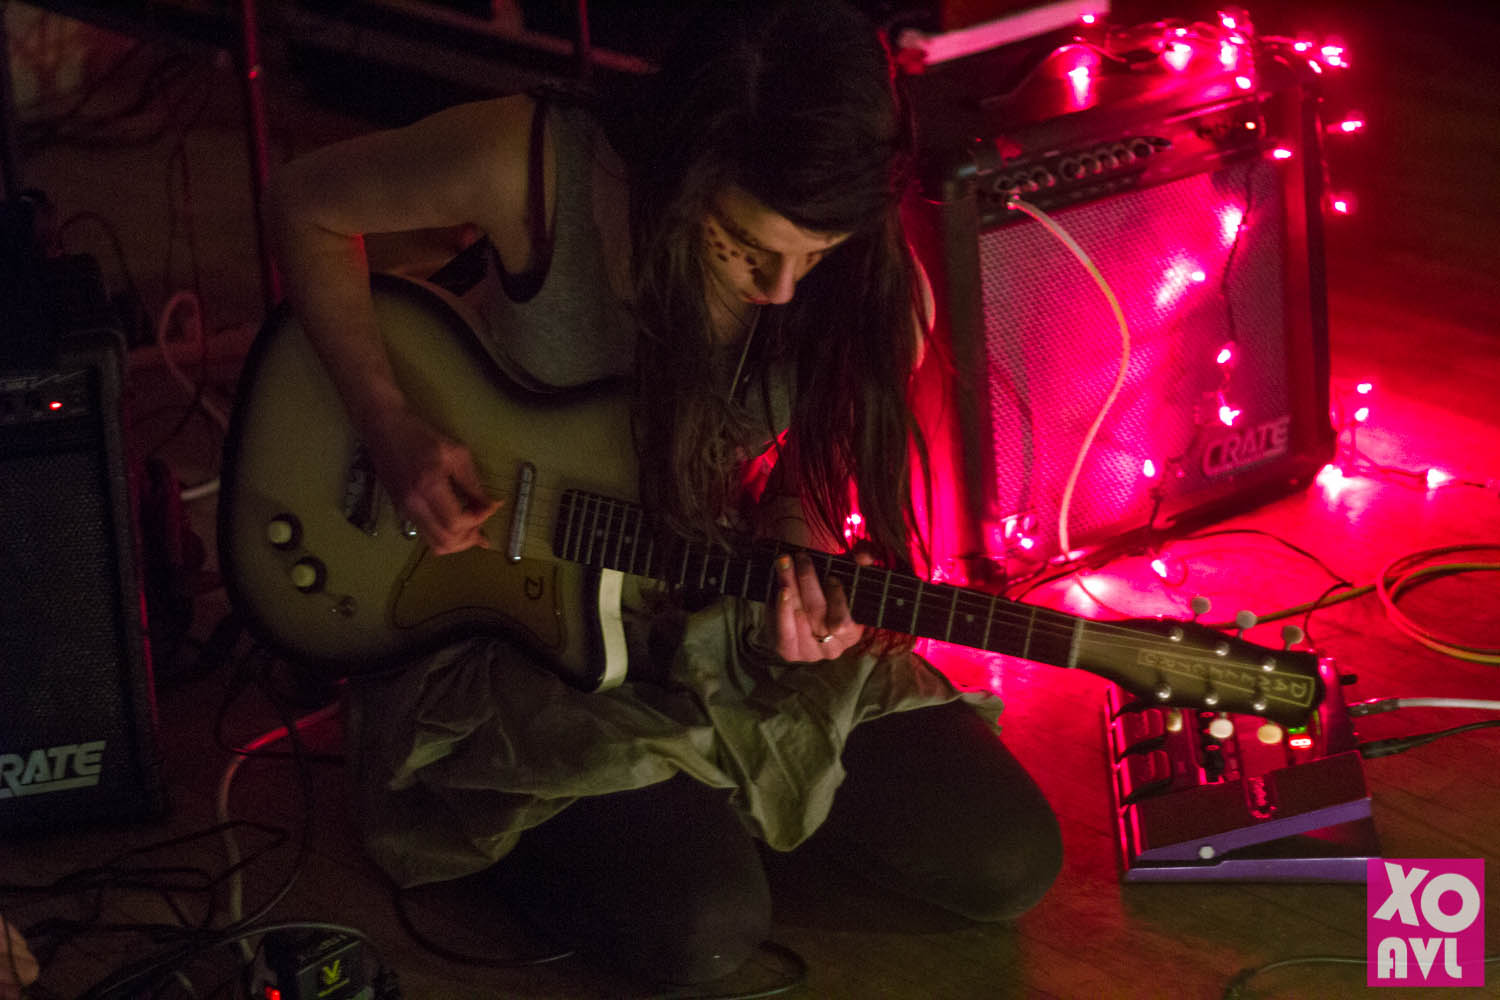 Apothecary on Eagle Street in Asheville with drone music performances